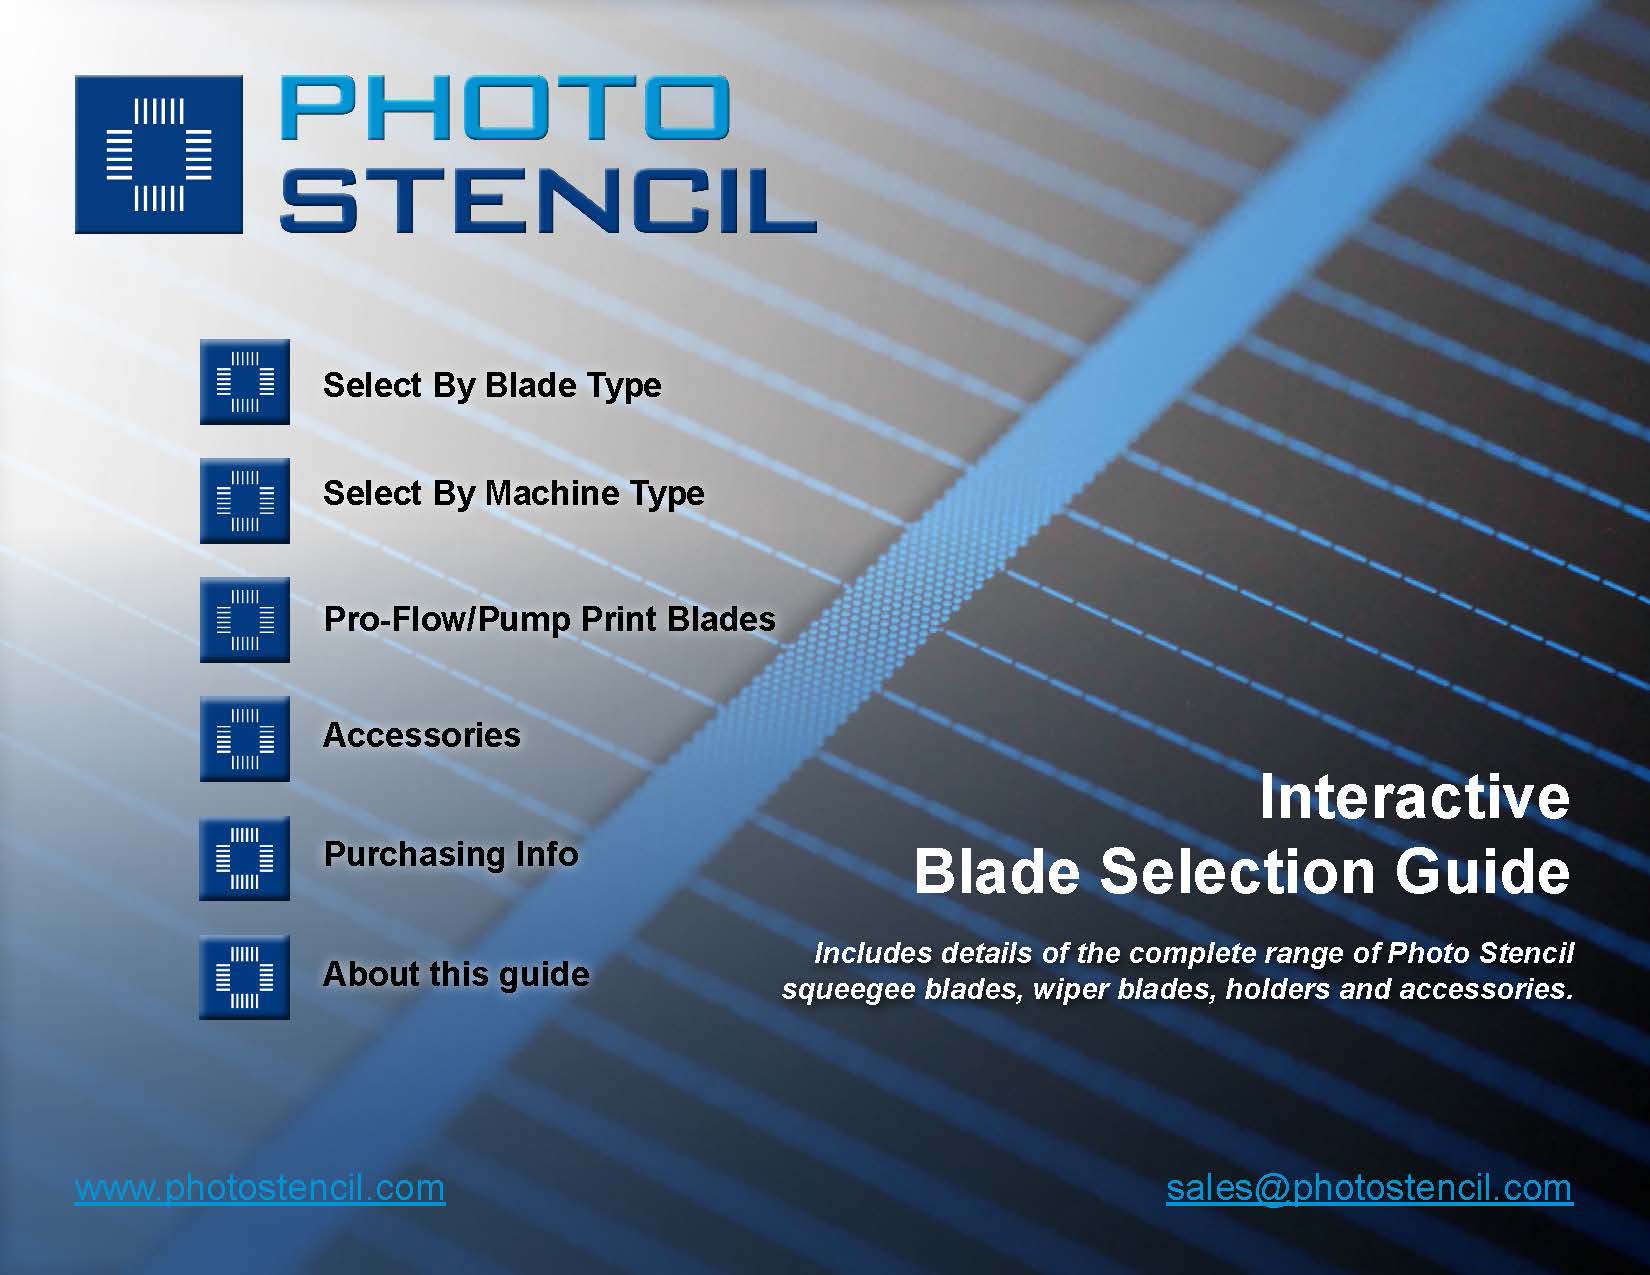 Photo Stencil Introduces Interactive Squeegee Blade Selection Guide